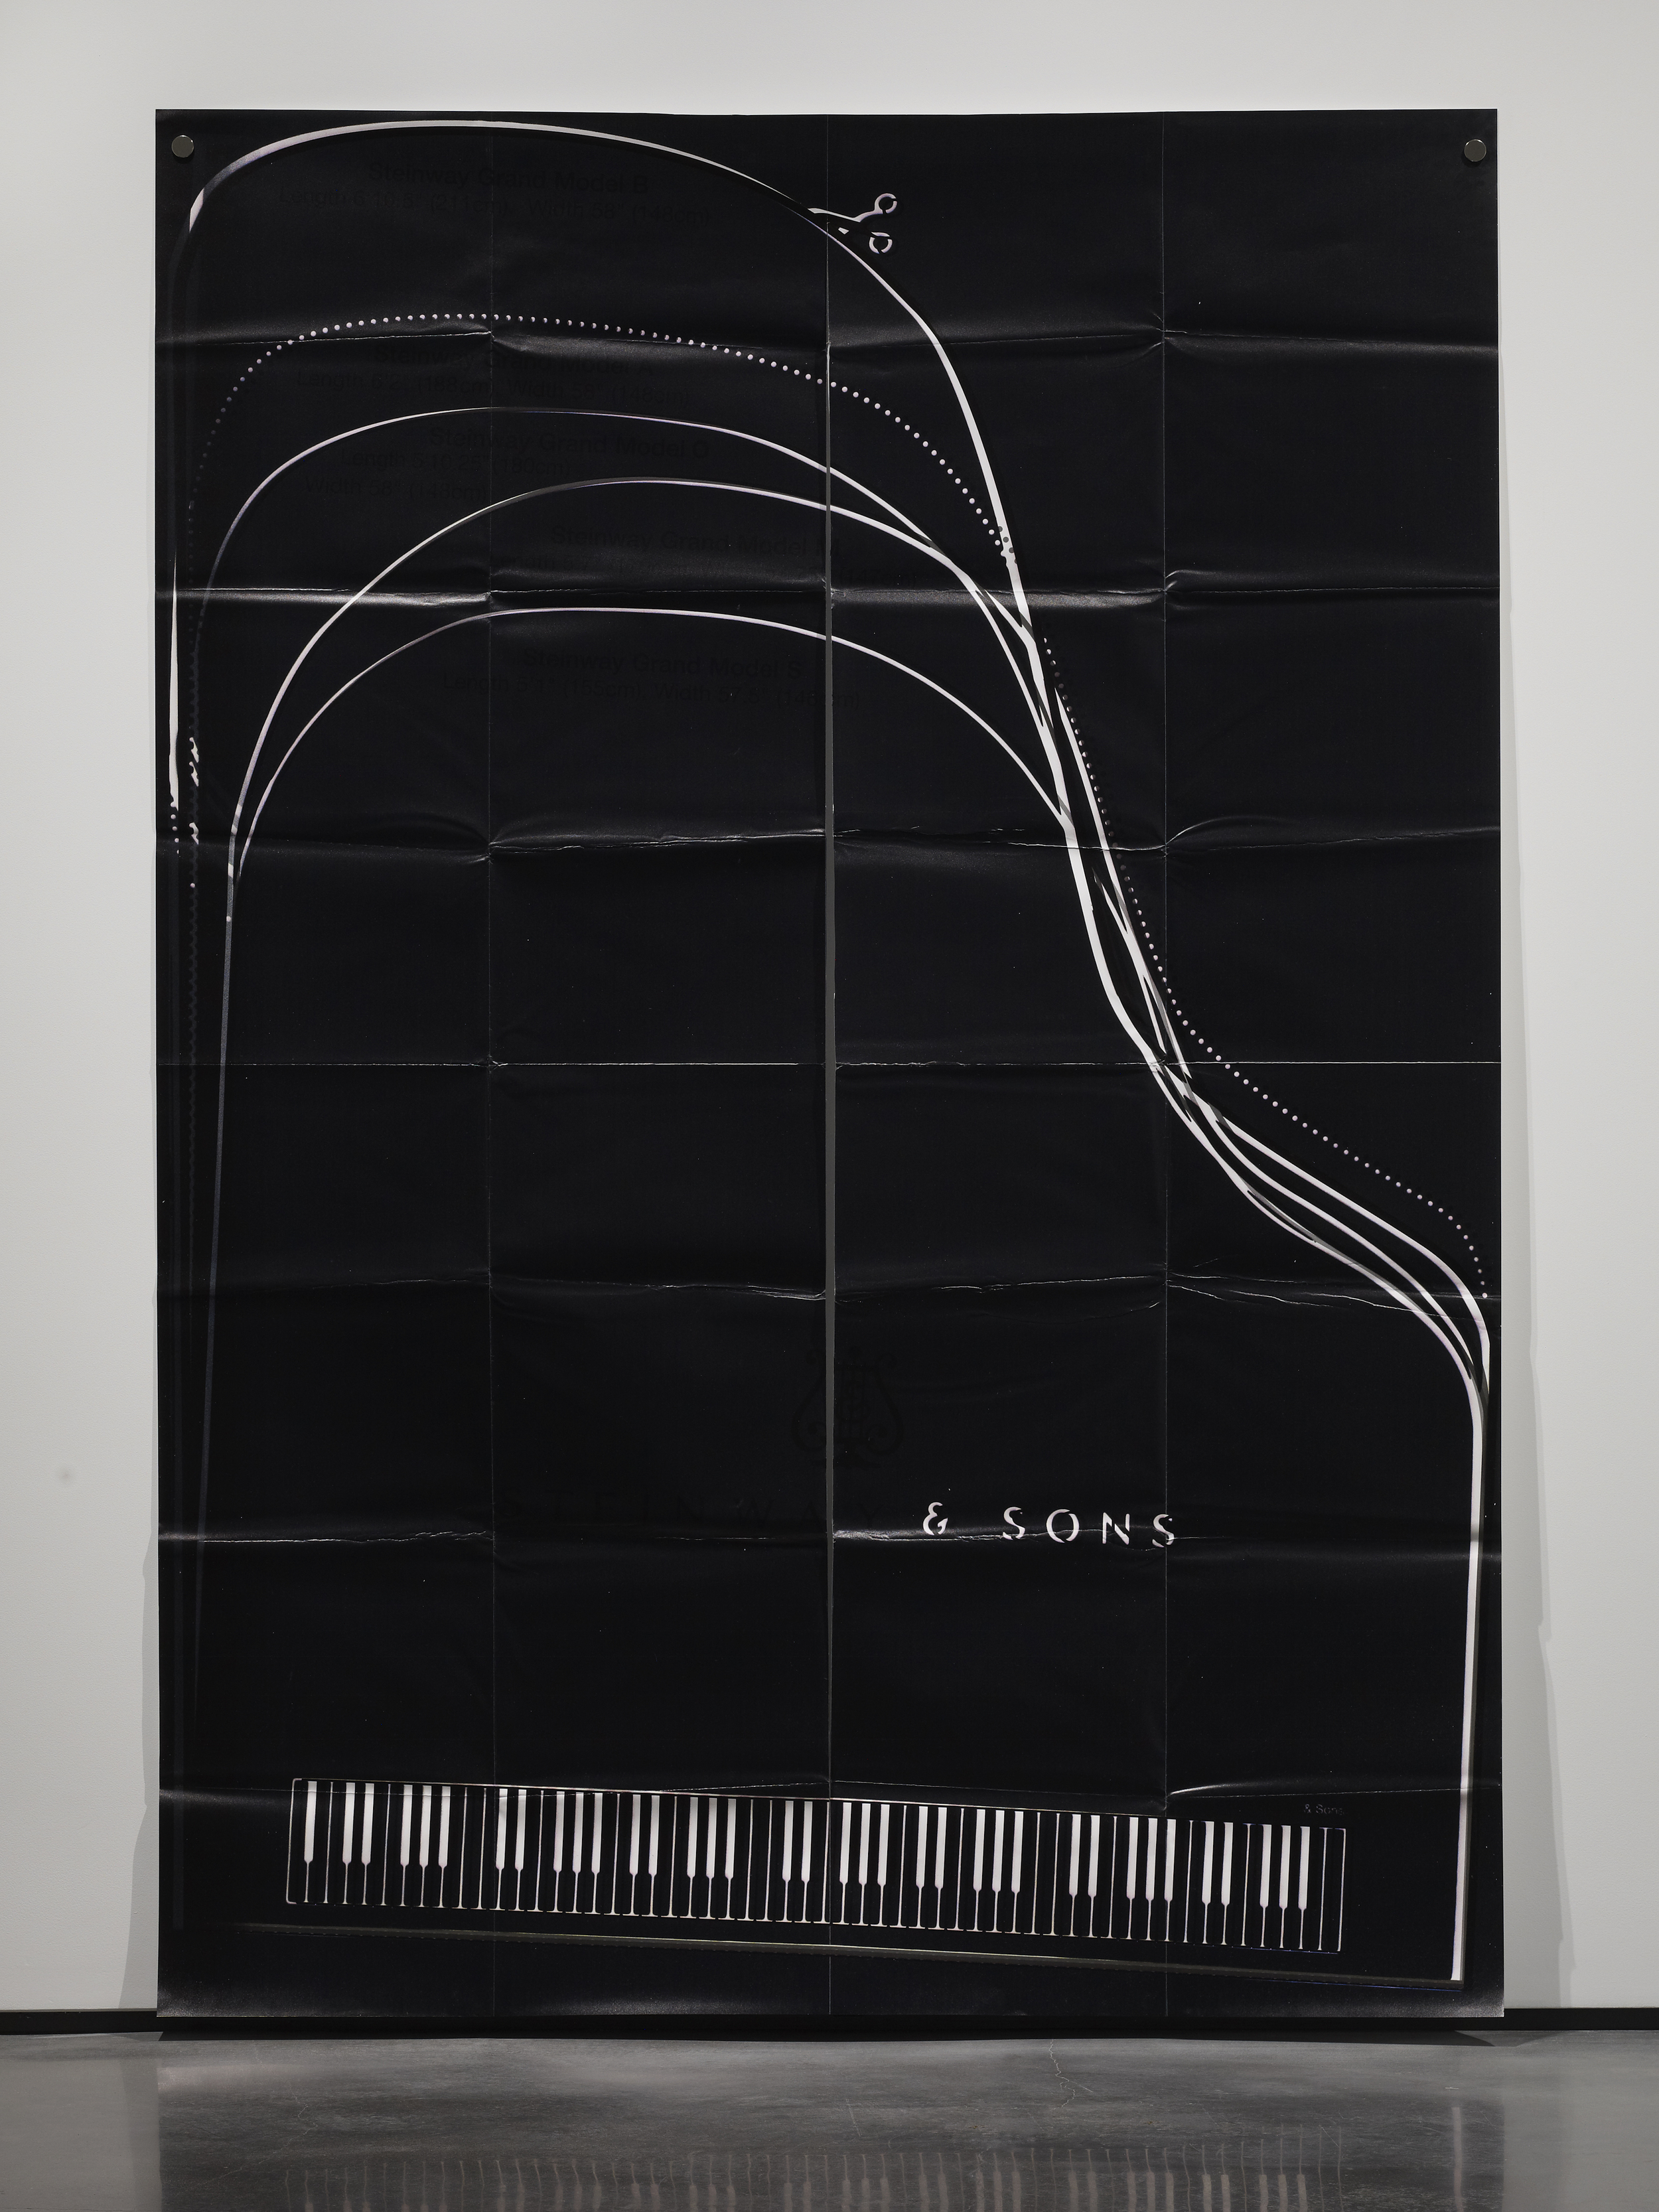 Lusty Ghost (11) 2014 Ink and UV print on paper mounted on aluminum 219.7 x 154.9 cm / 86.5 x 61 in